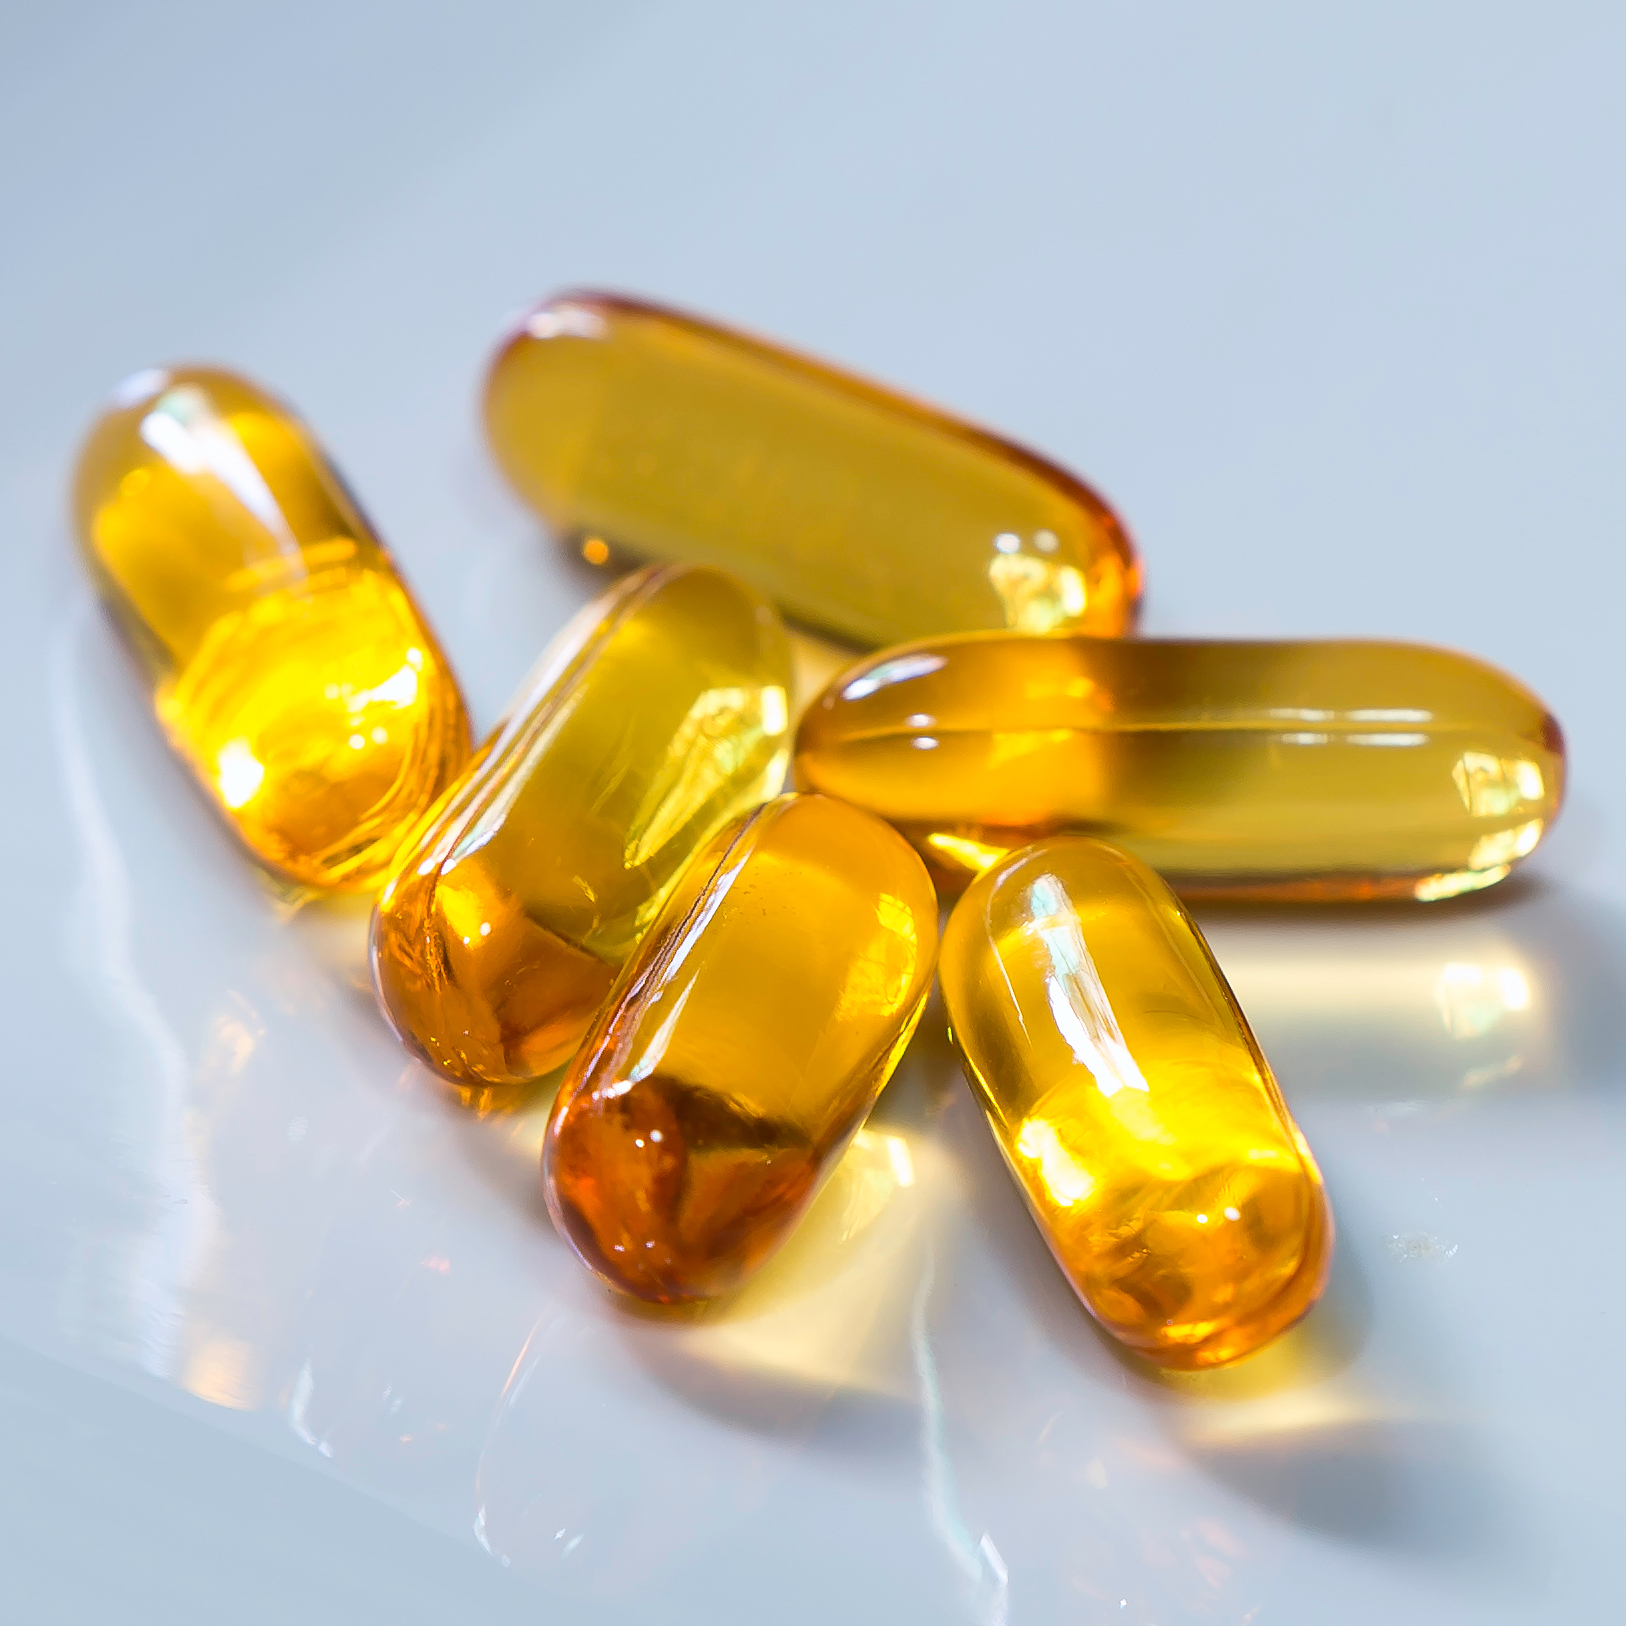 Omega-7 supplements